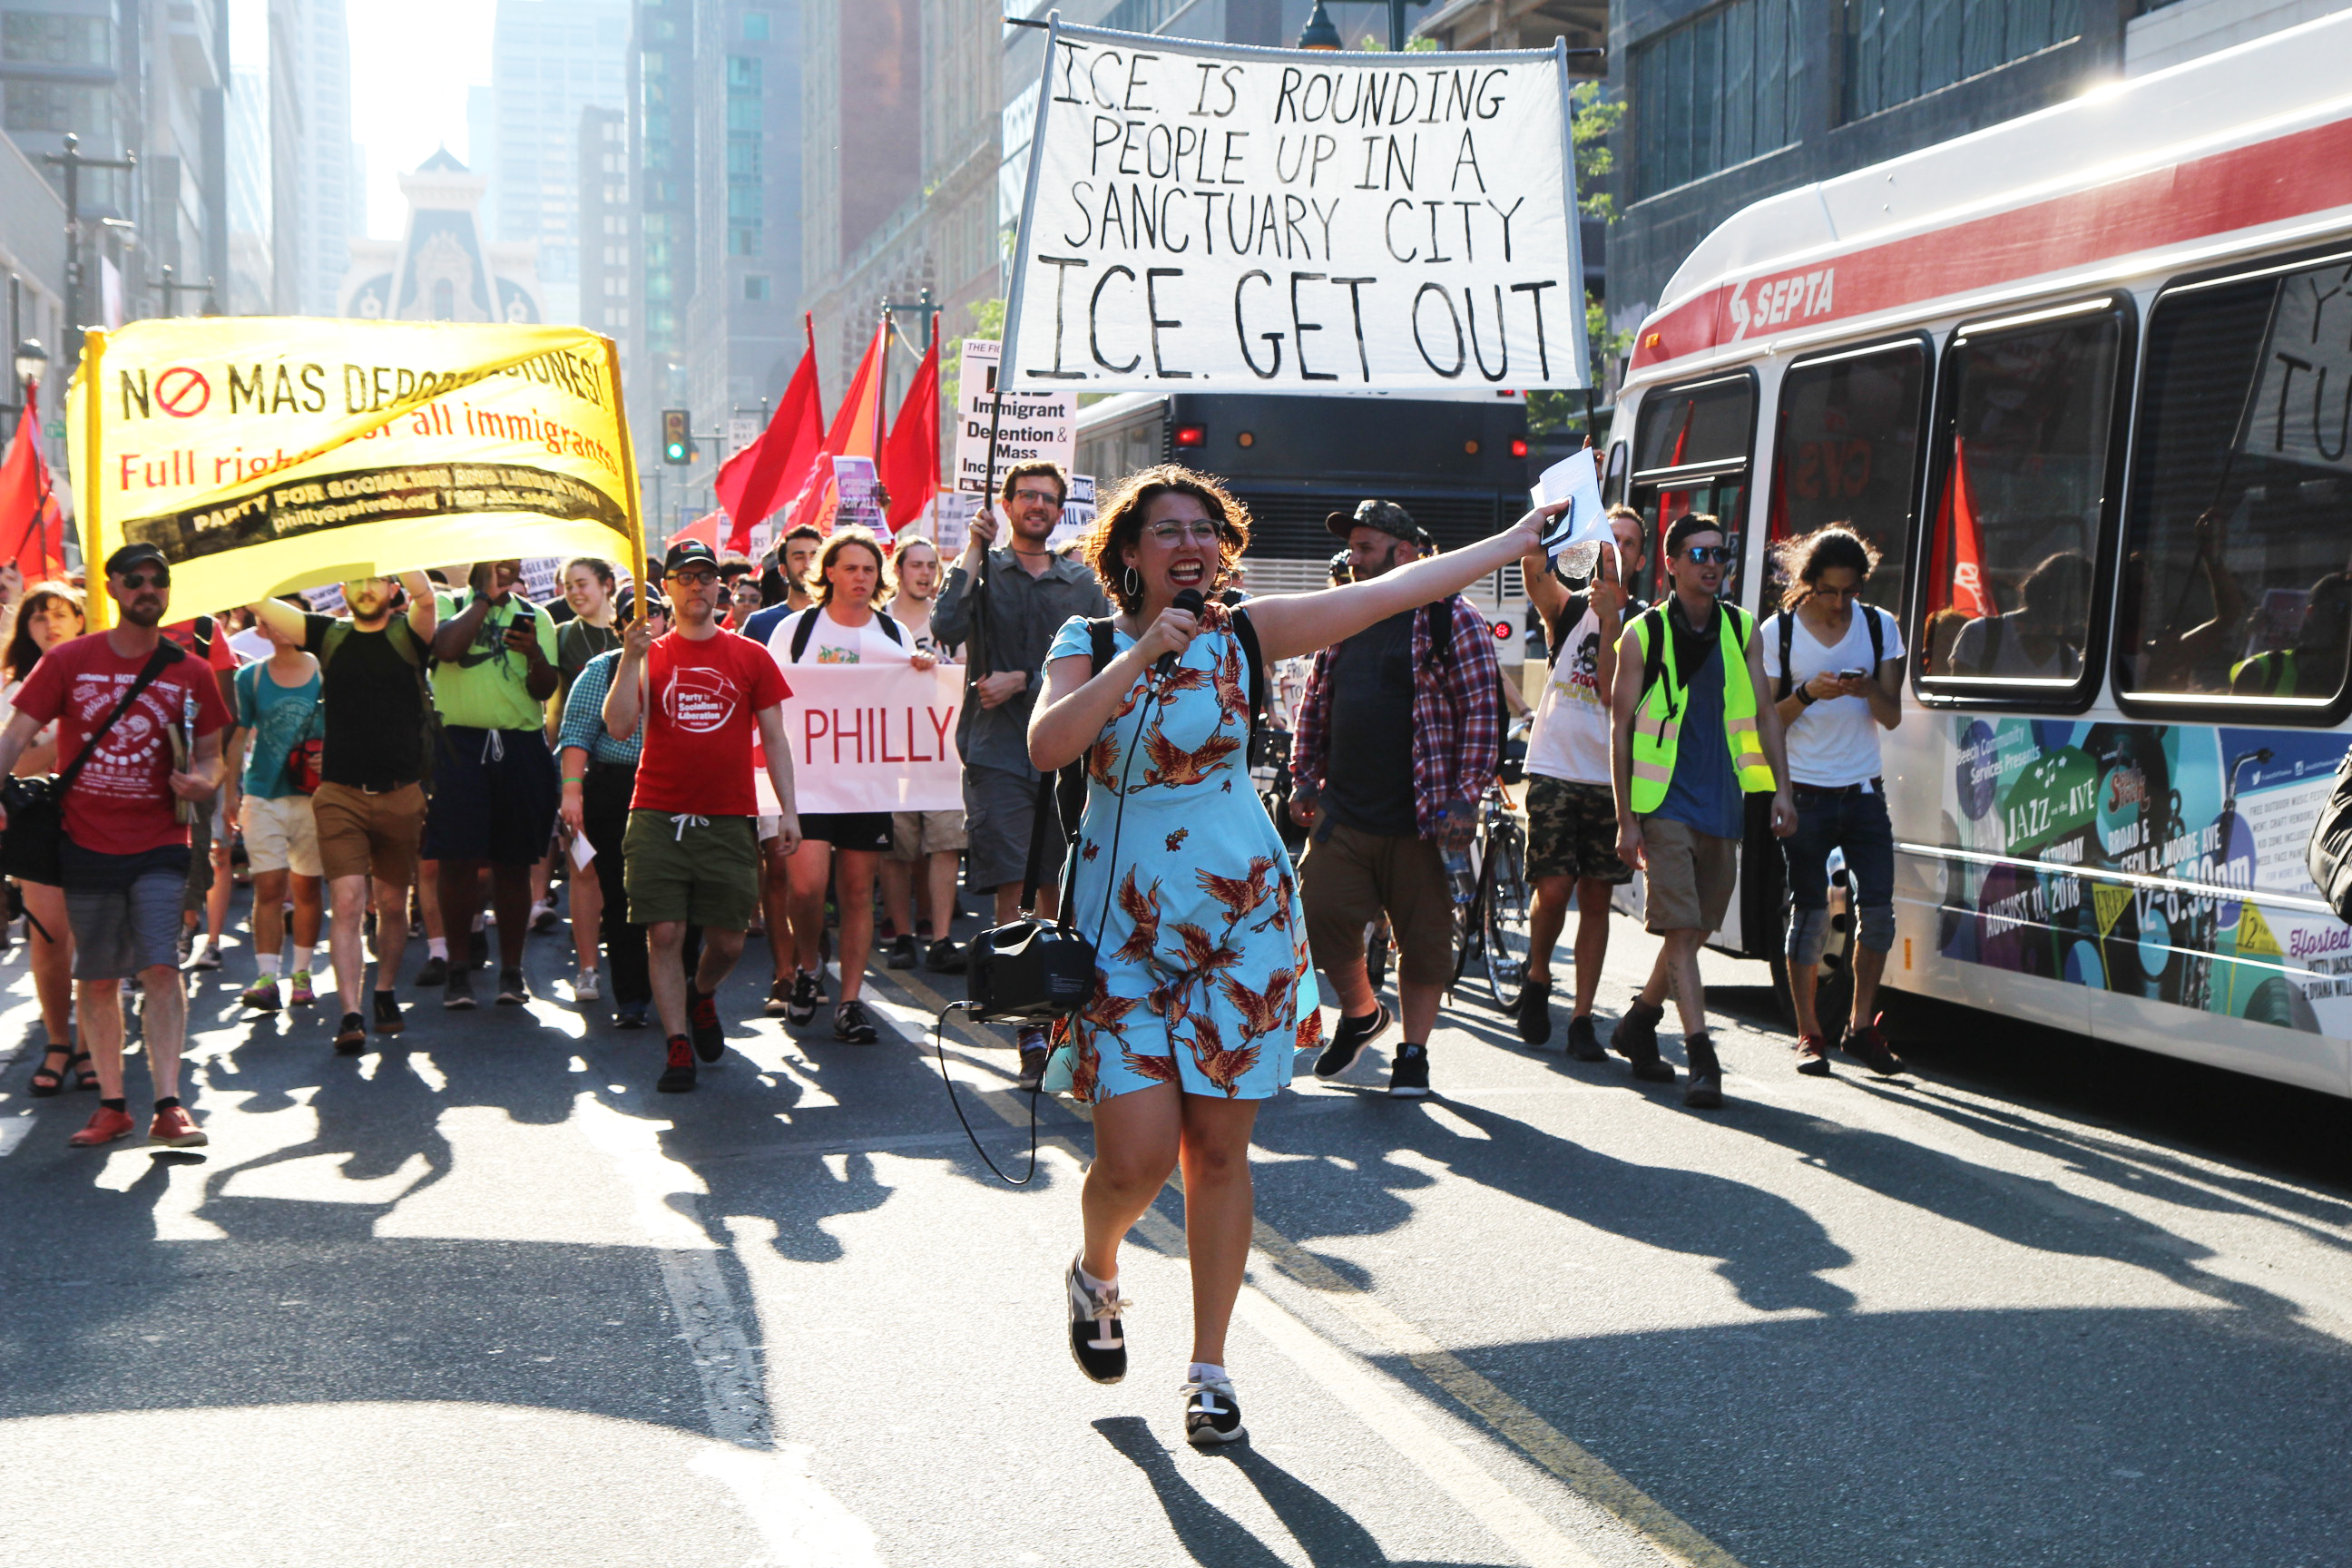 "Protesters march in the street, carrying a banner that reads ""ICE is rounding people up in a sanctuary city. ICE GET OUT."" An activist leads the march with a megaphone."